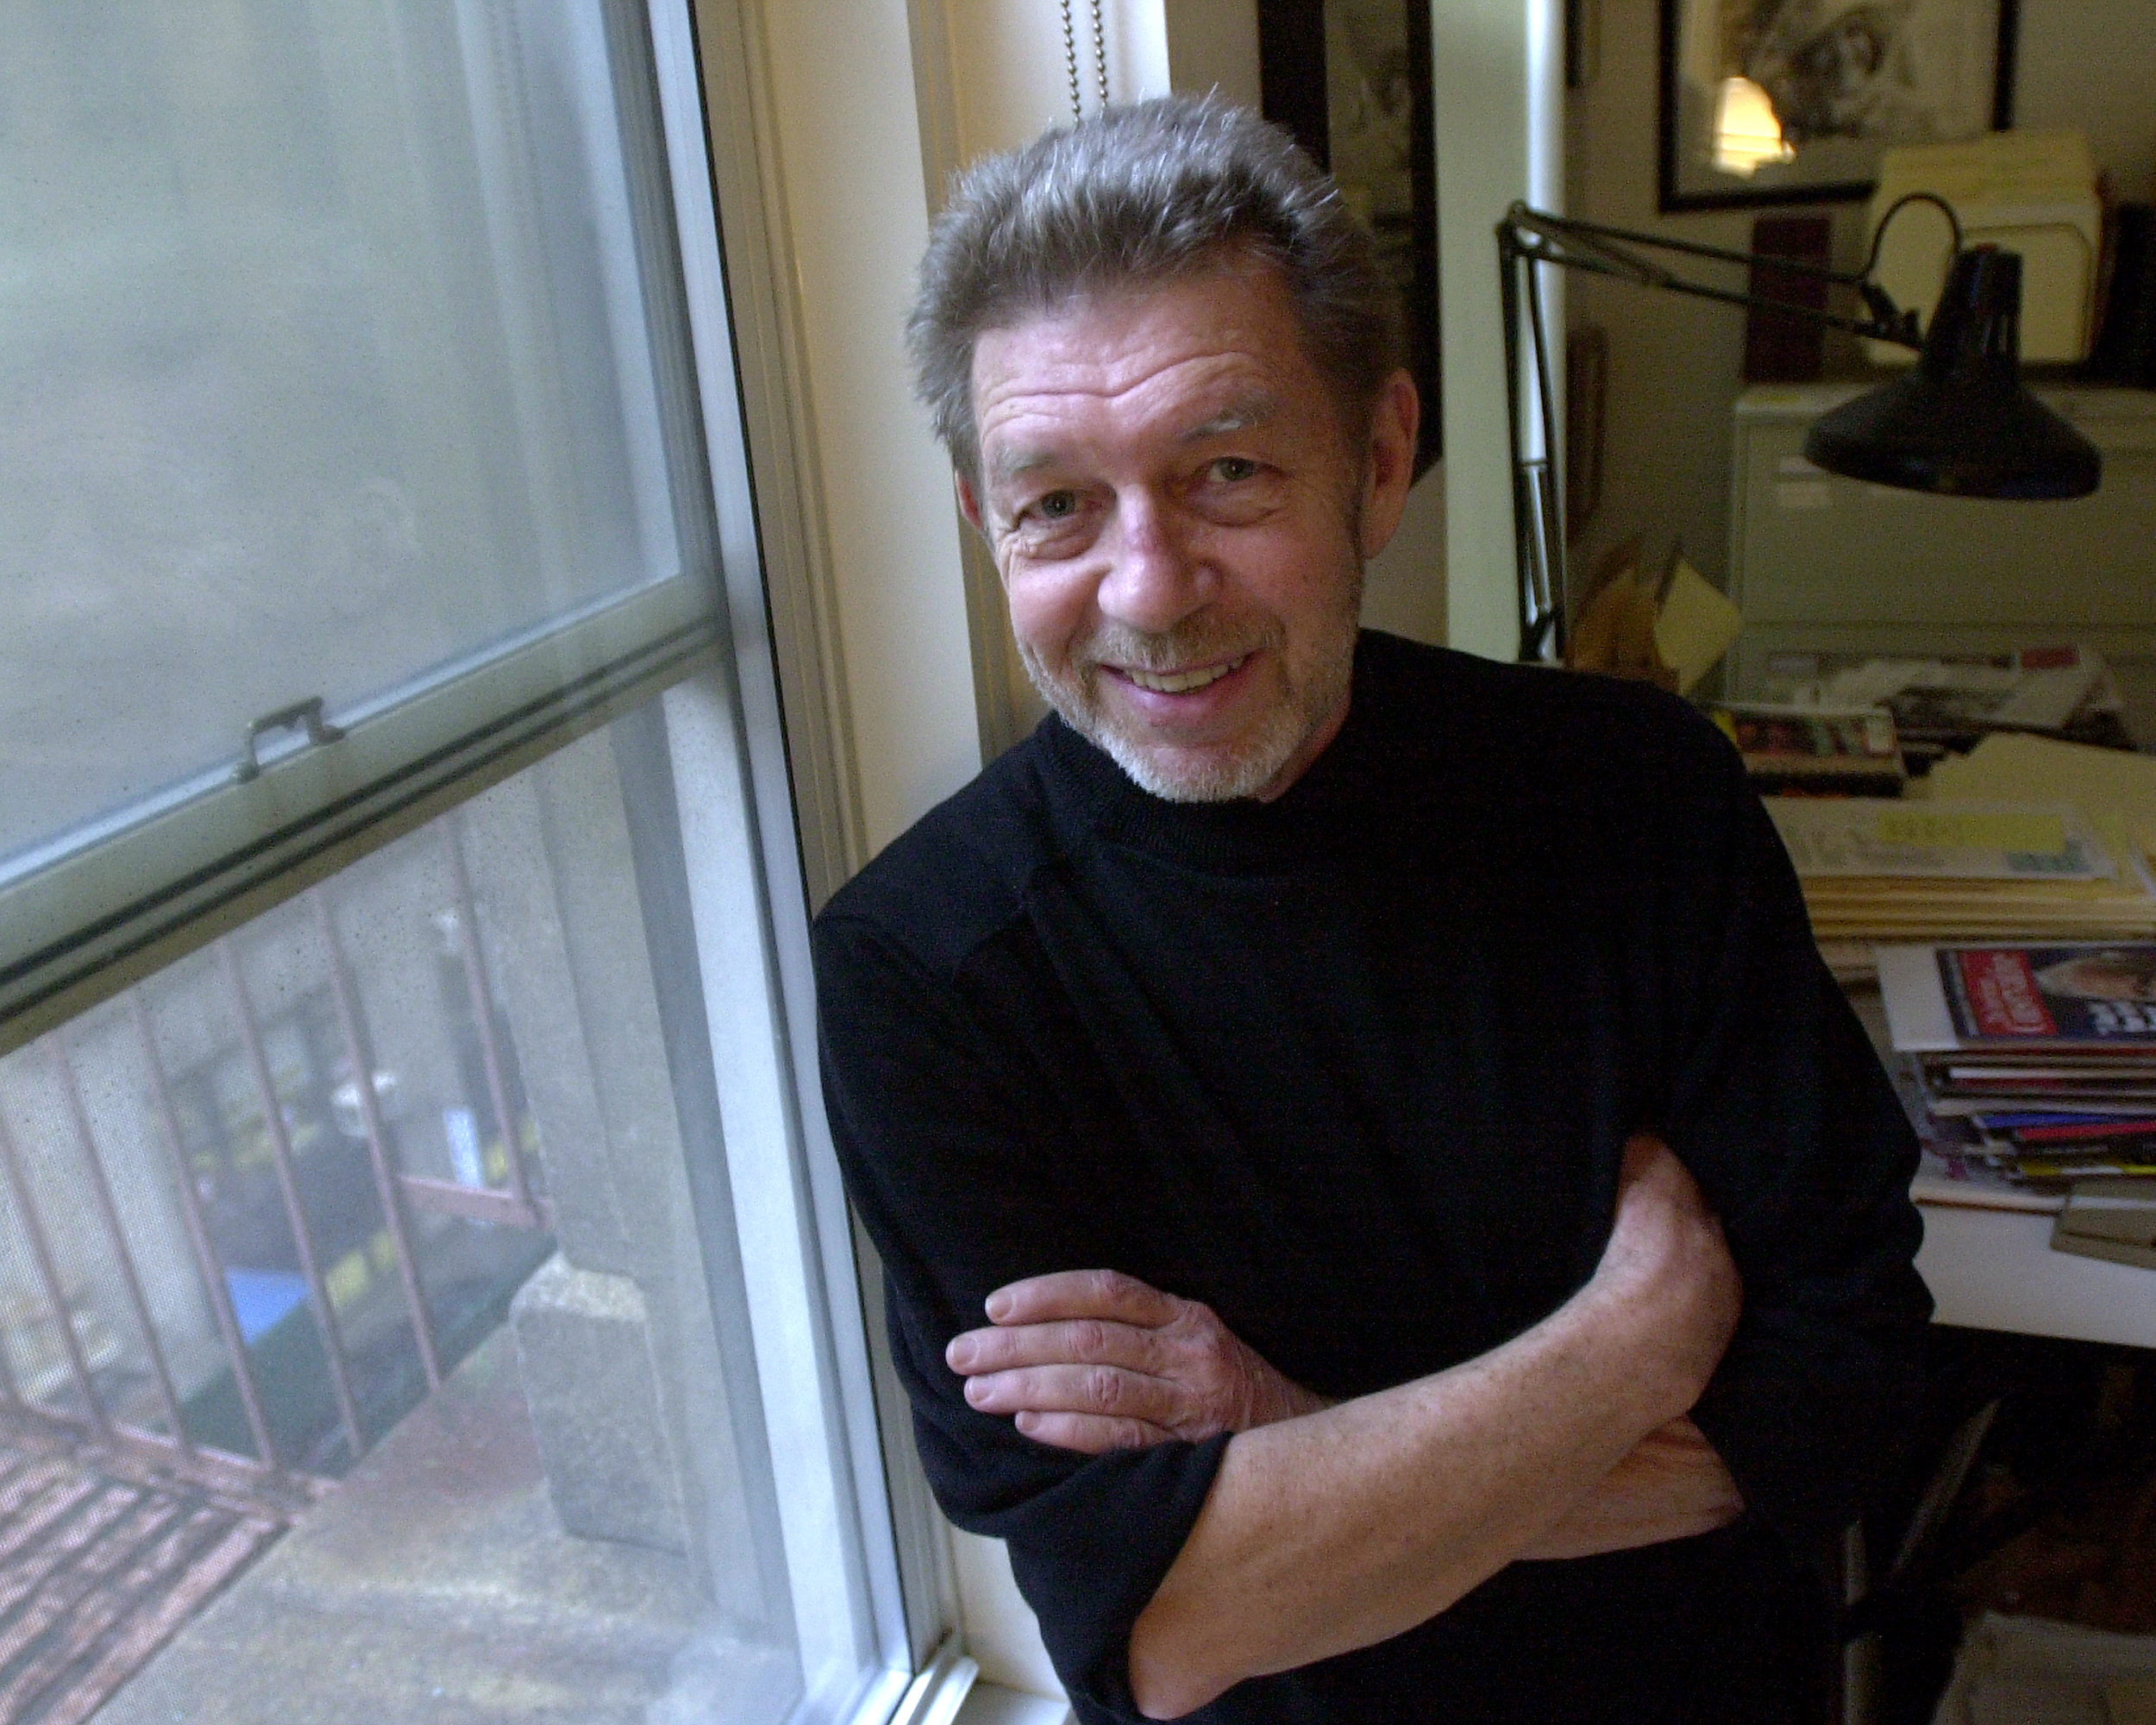 Daily News columnist and best-selling author Pete Hamill